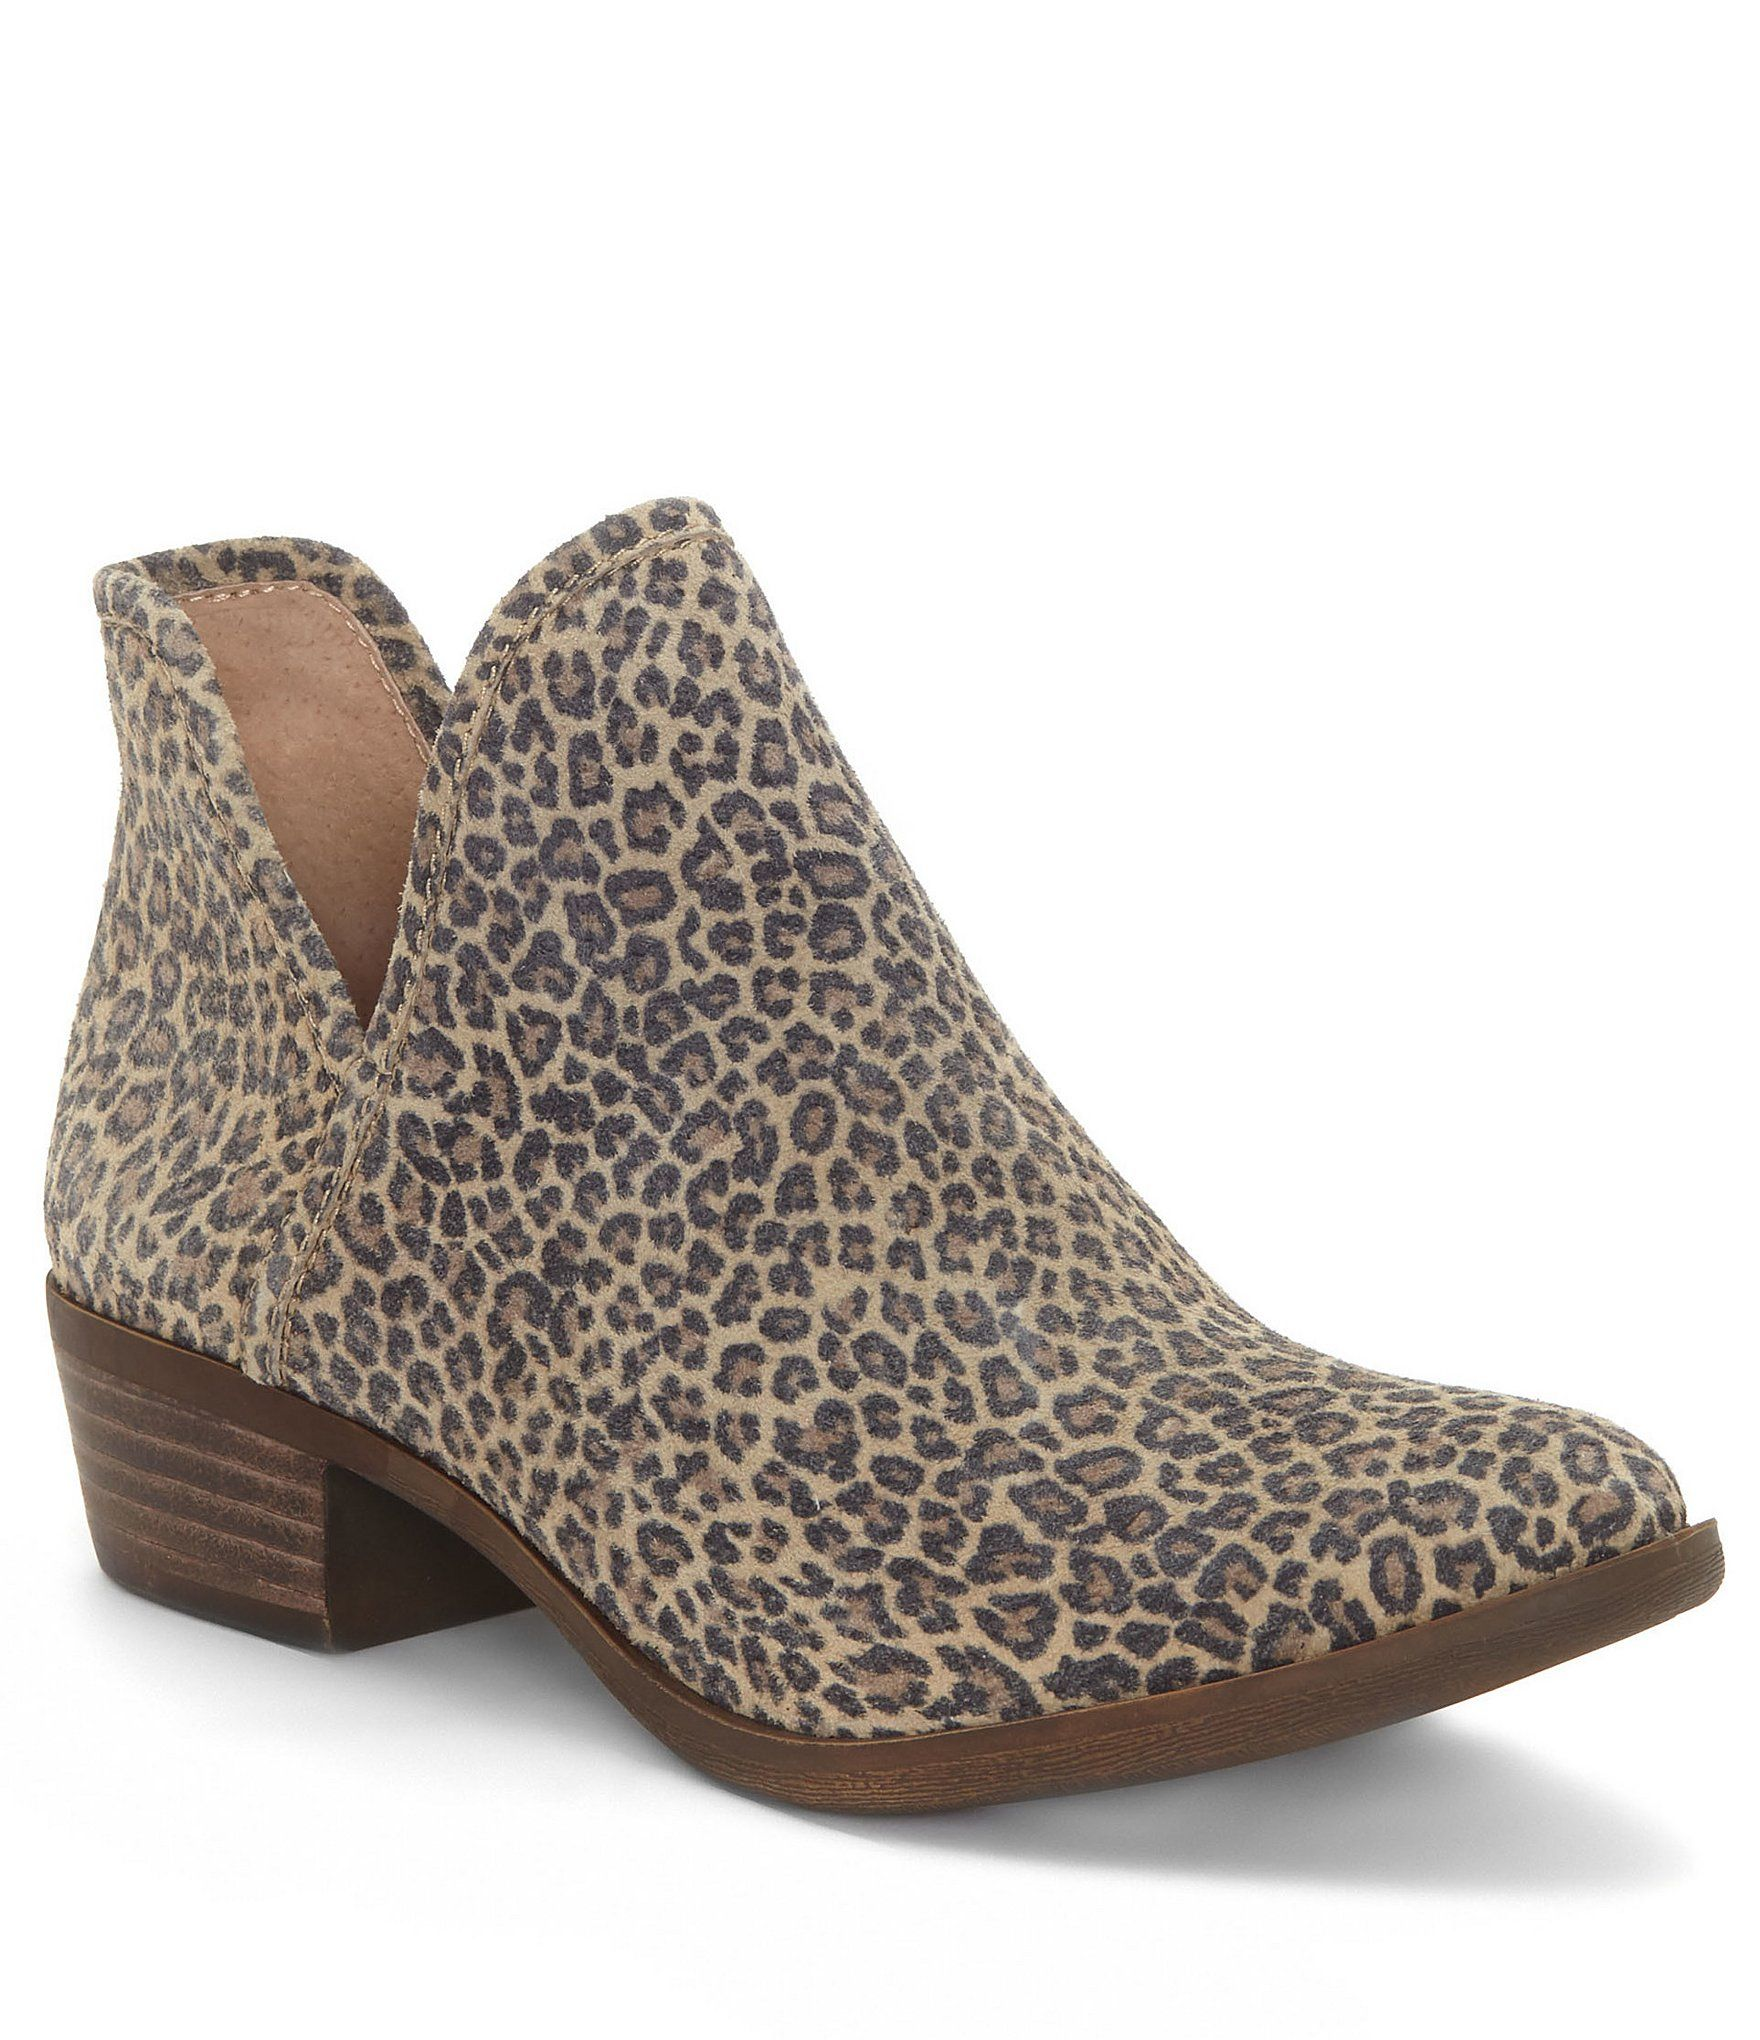 Lucky Brand Bashina2 Leopard Print Block Heel Booties | Dillards